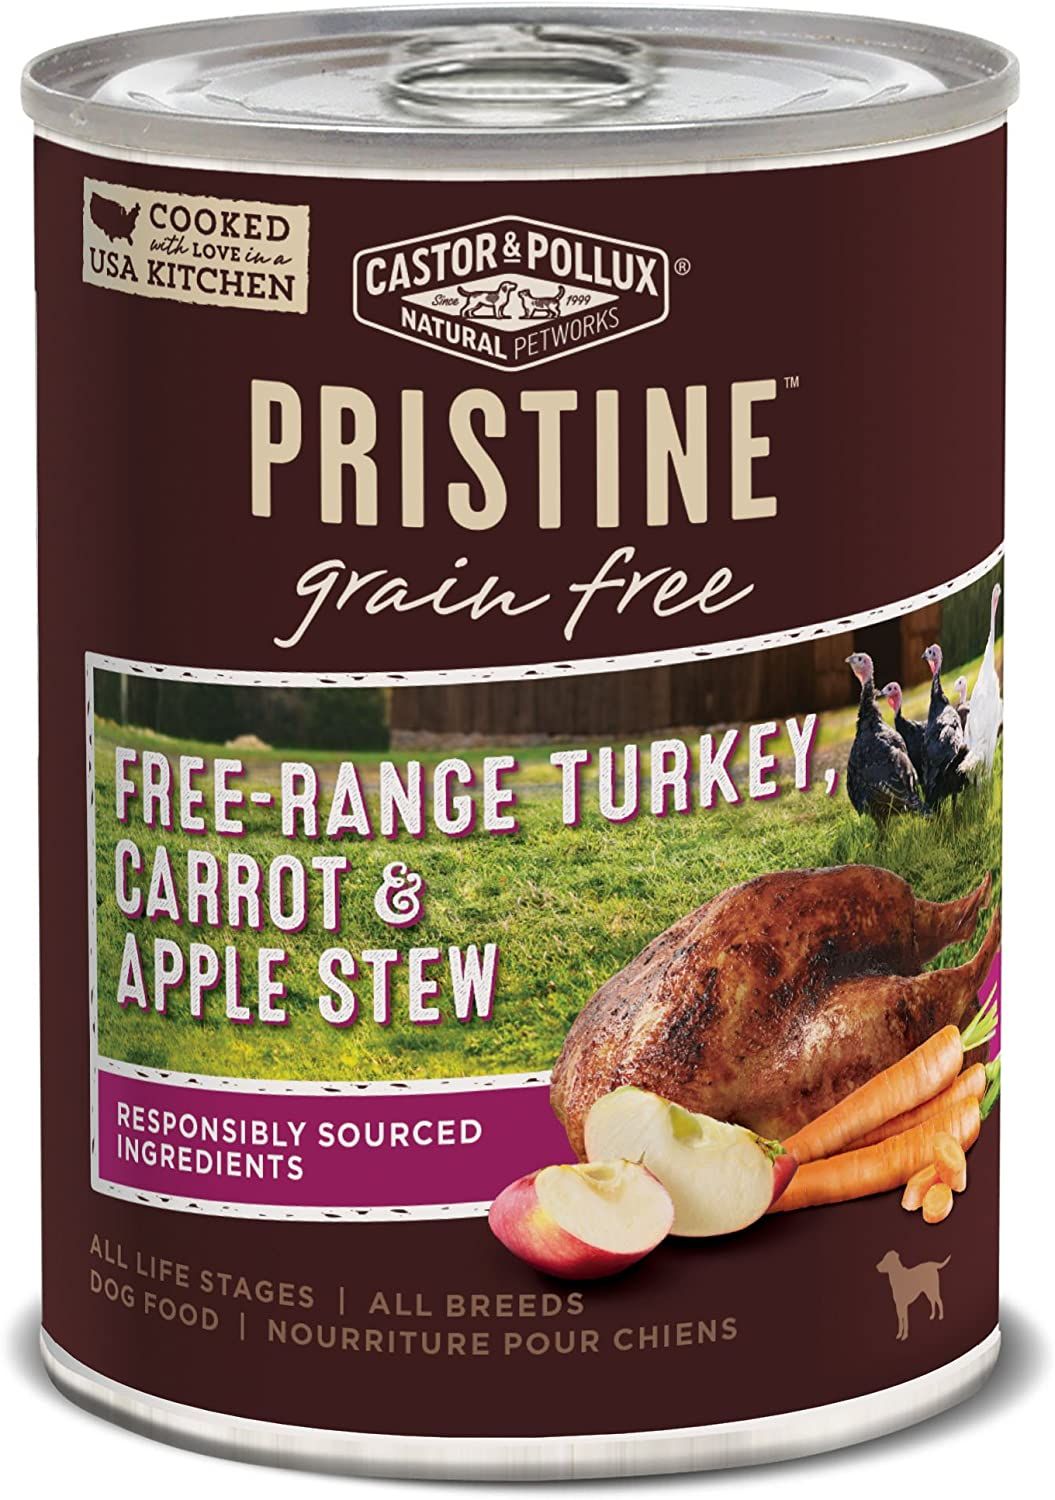 Castor & Pollux Pristine Grain Free Canned Wet Dog Food (12) 12.7 oz Cans